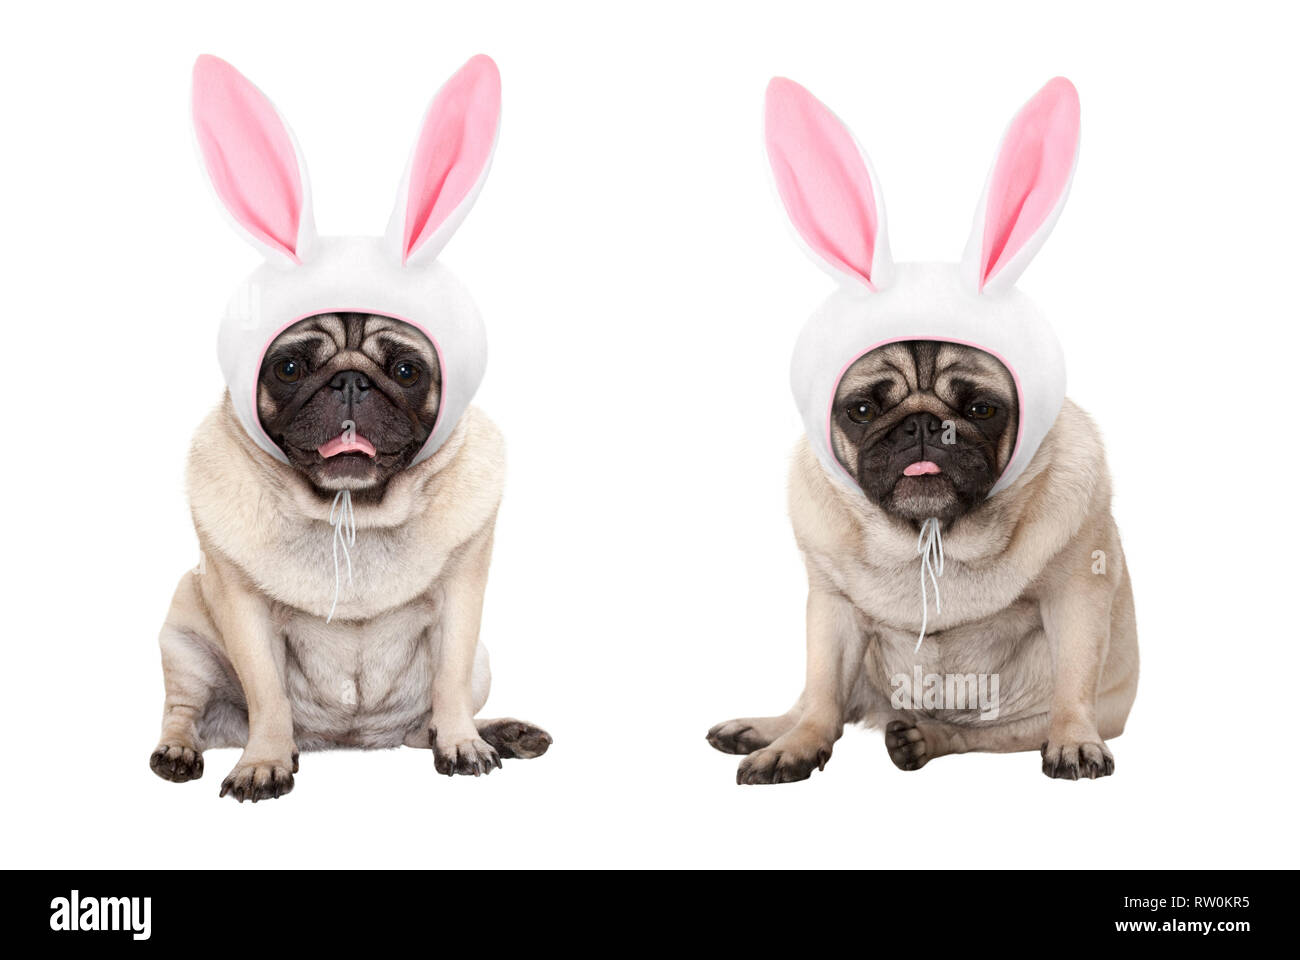 funny little easter pug puppy dogs, sitting down, wearing easter bunny cap with ears, isolated on white background Stock Photo